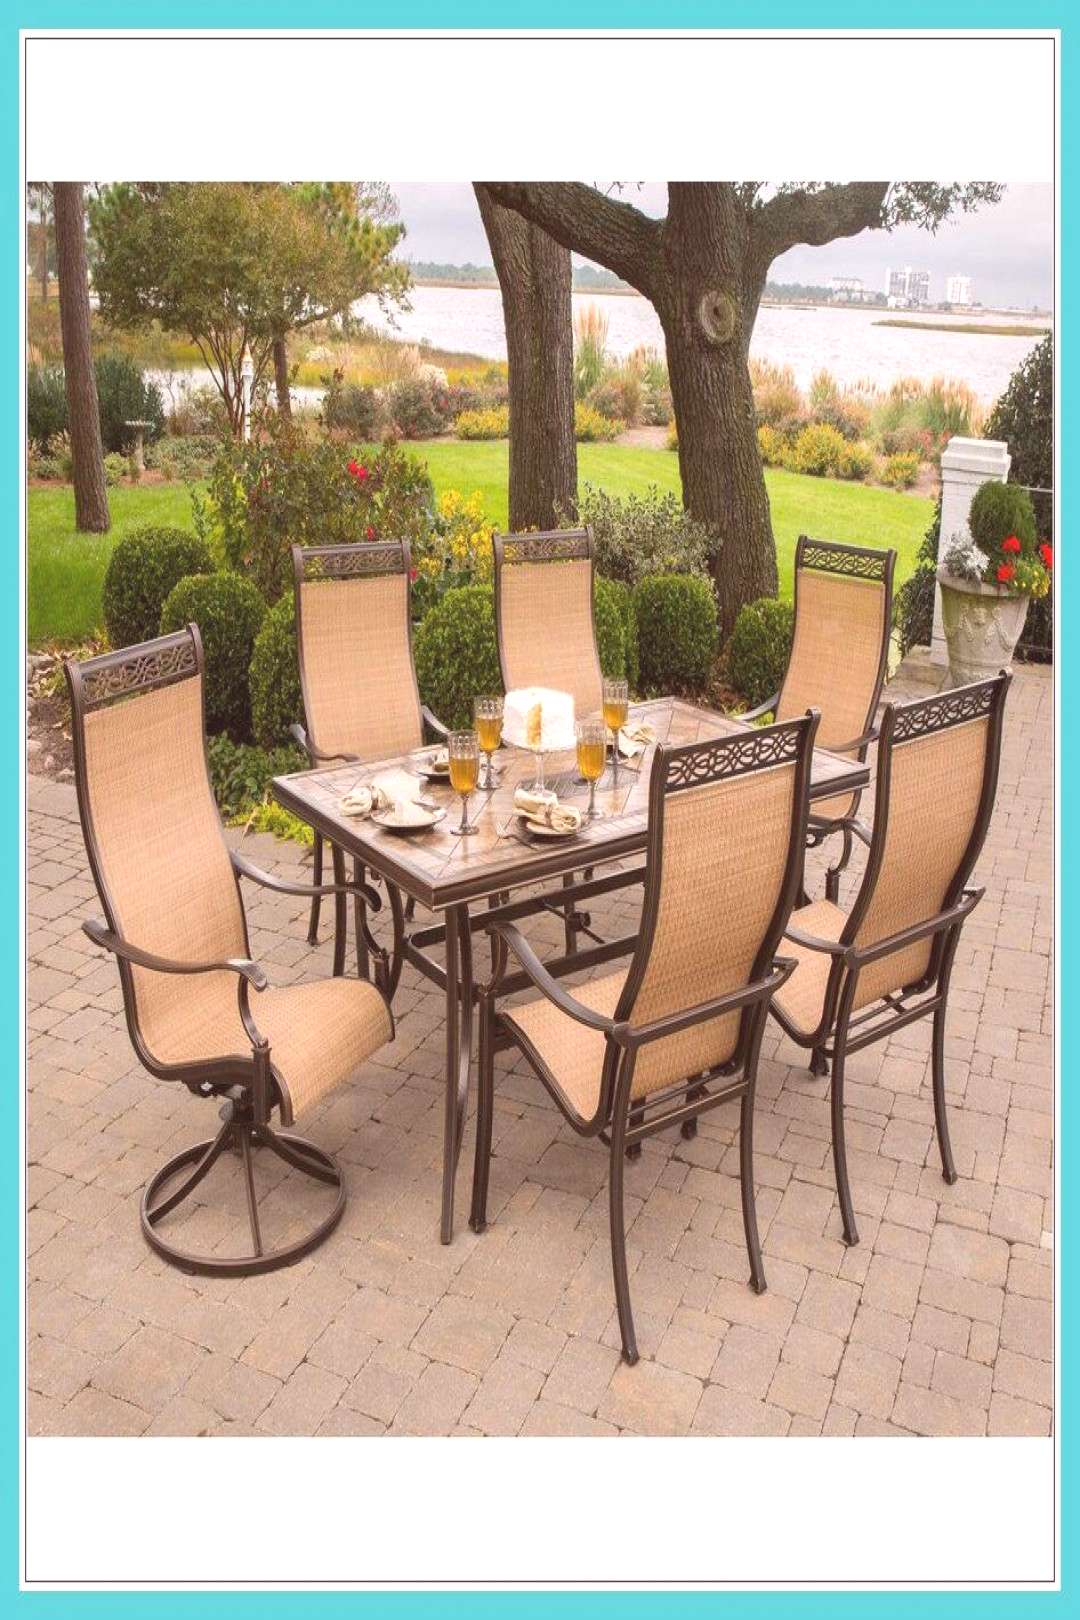 69 reference of outdoor patio restaurants plano outdoor patio restaurants plano-#outdoor Please Cli